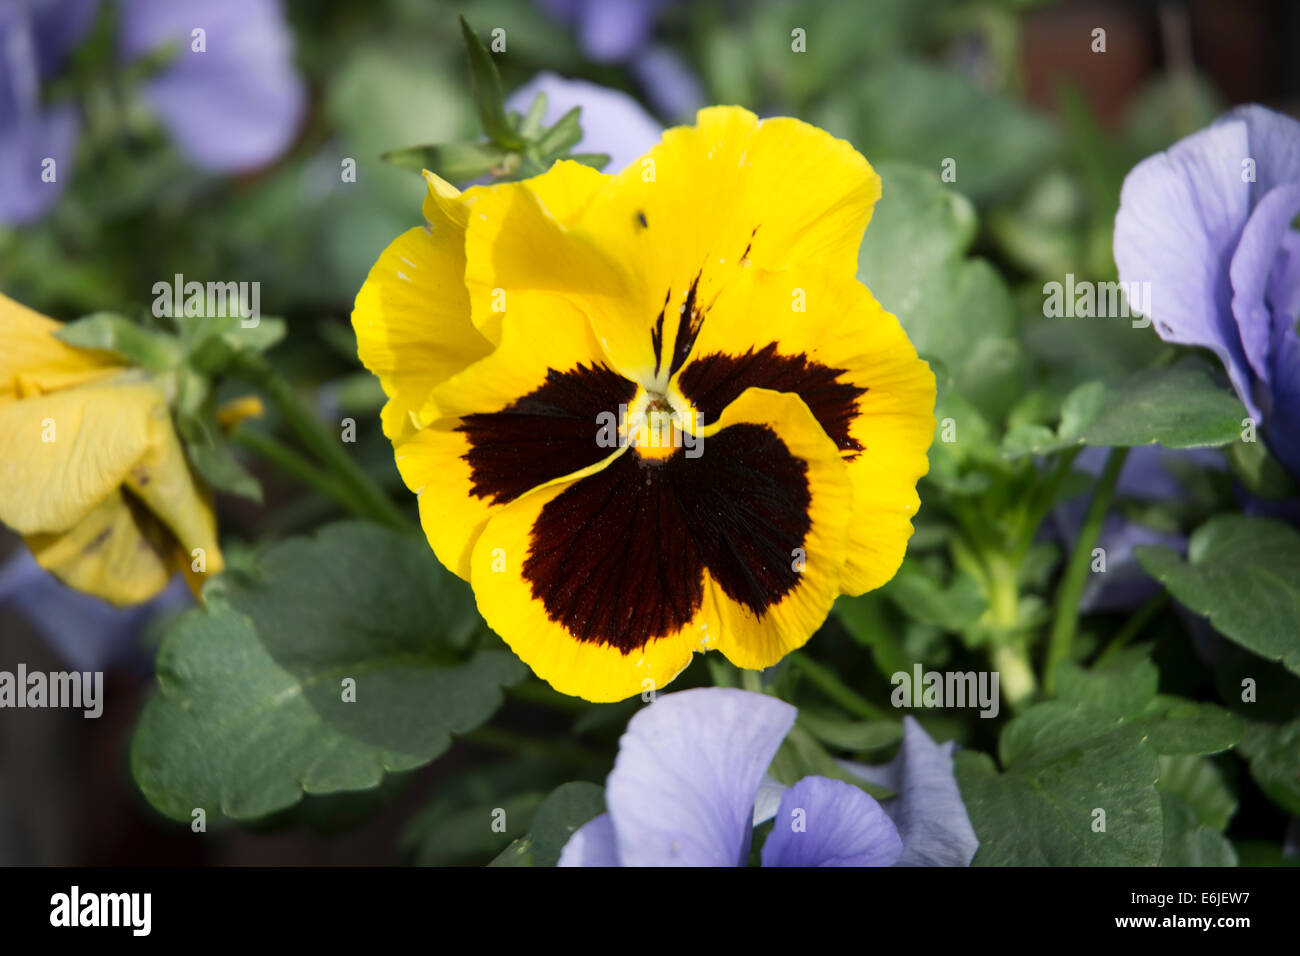 Yellow Pansy Flower Stock Photos Yellow Pansy Flower Stock Images